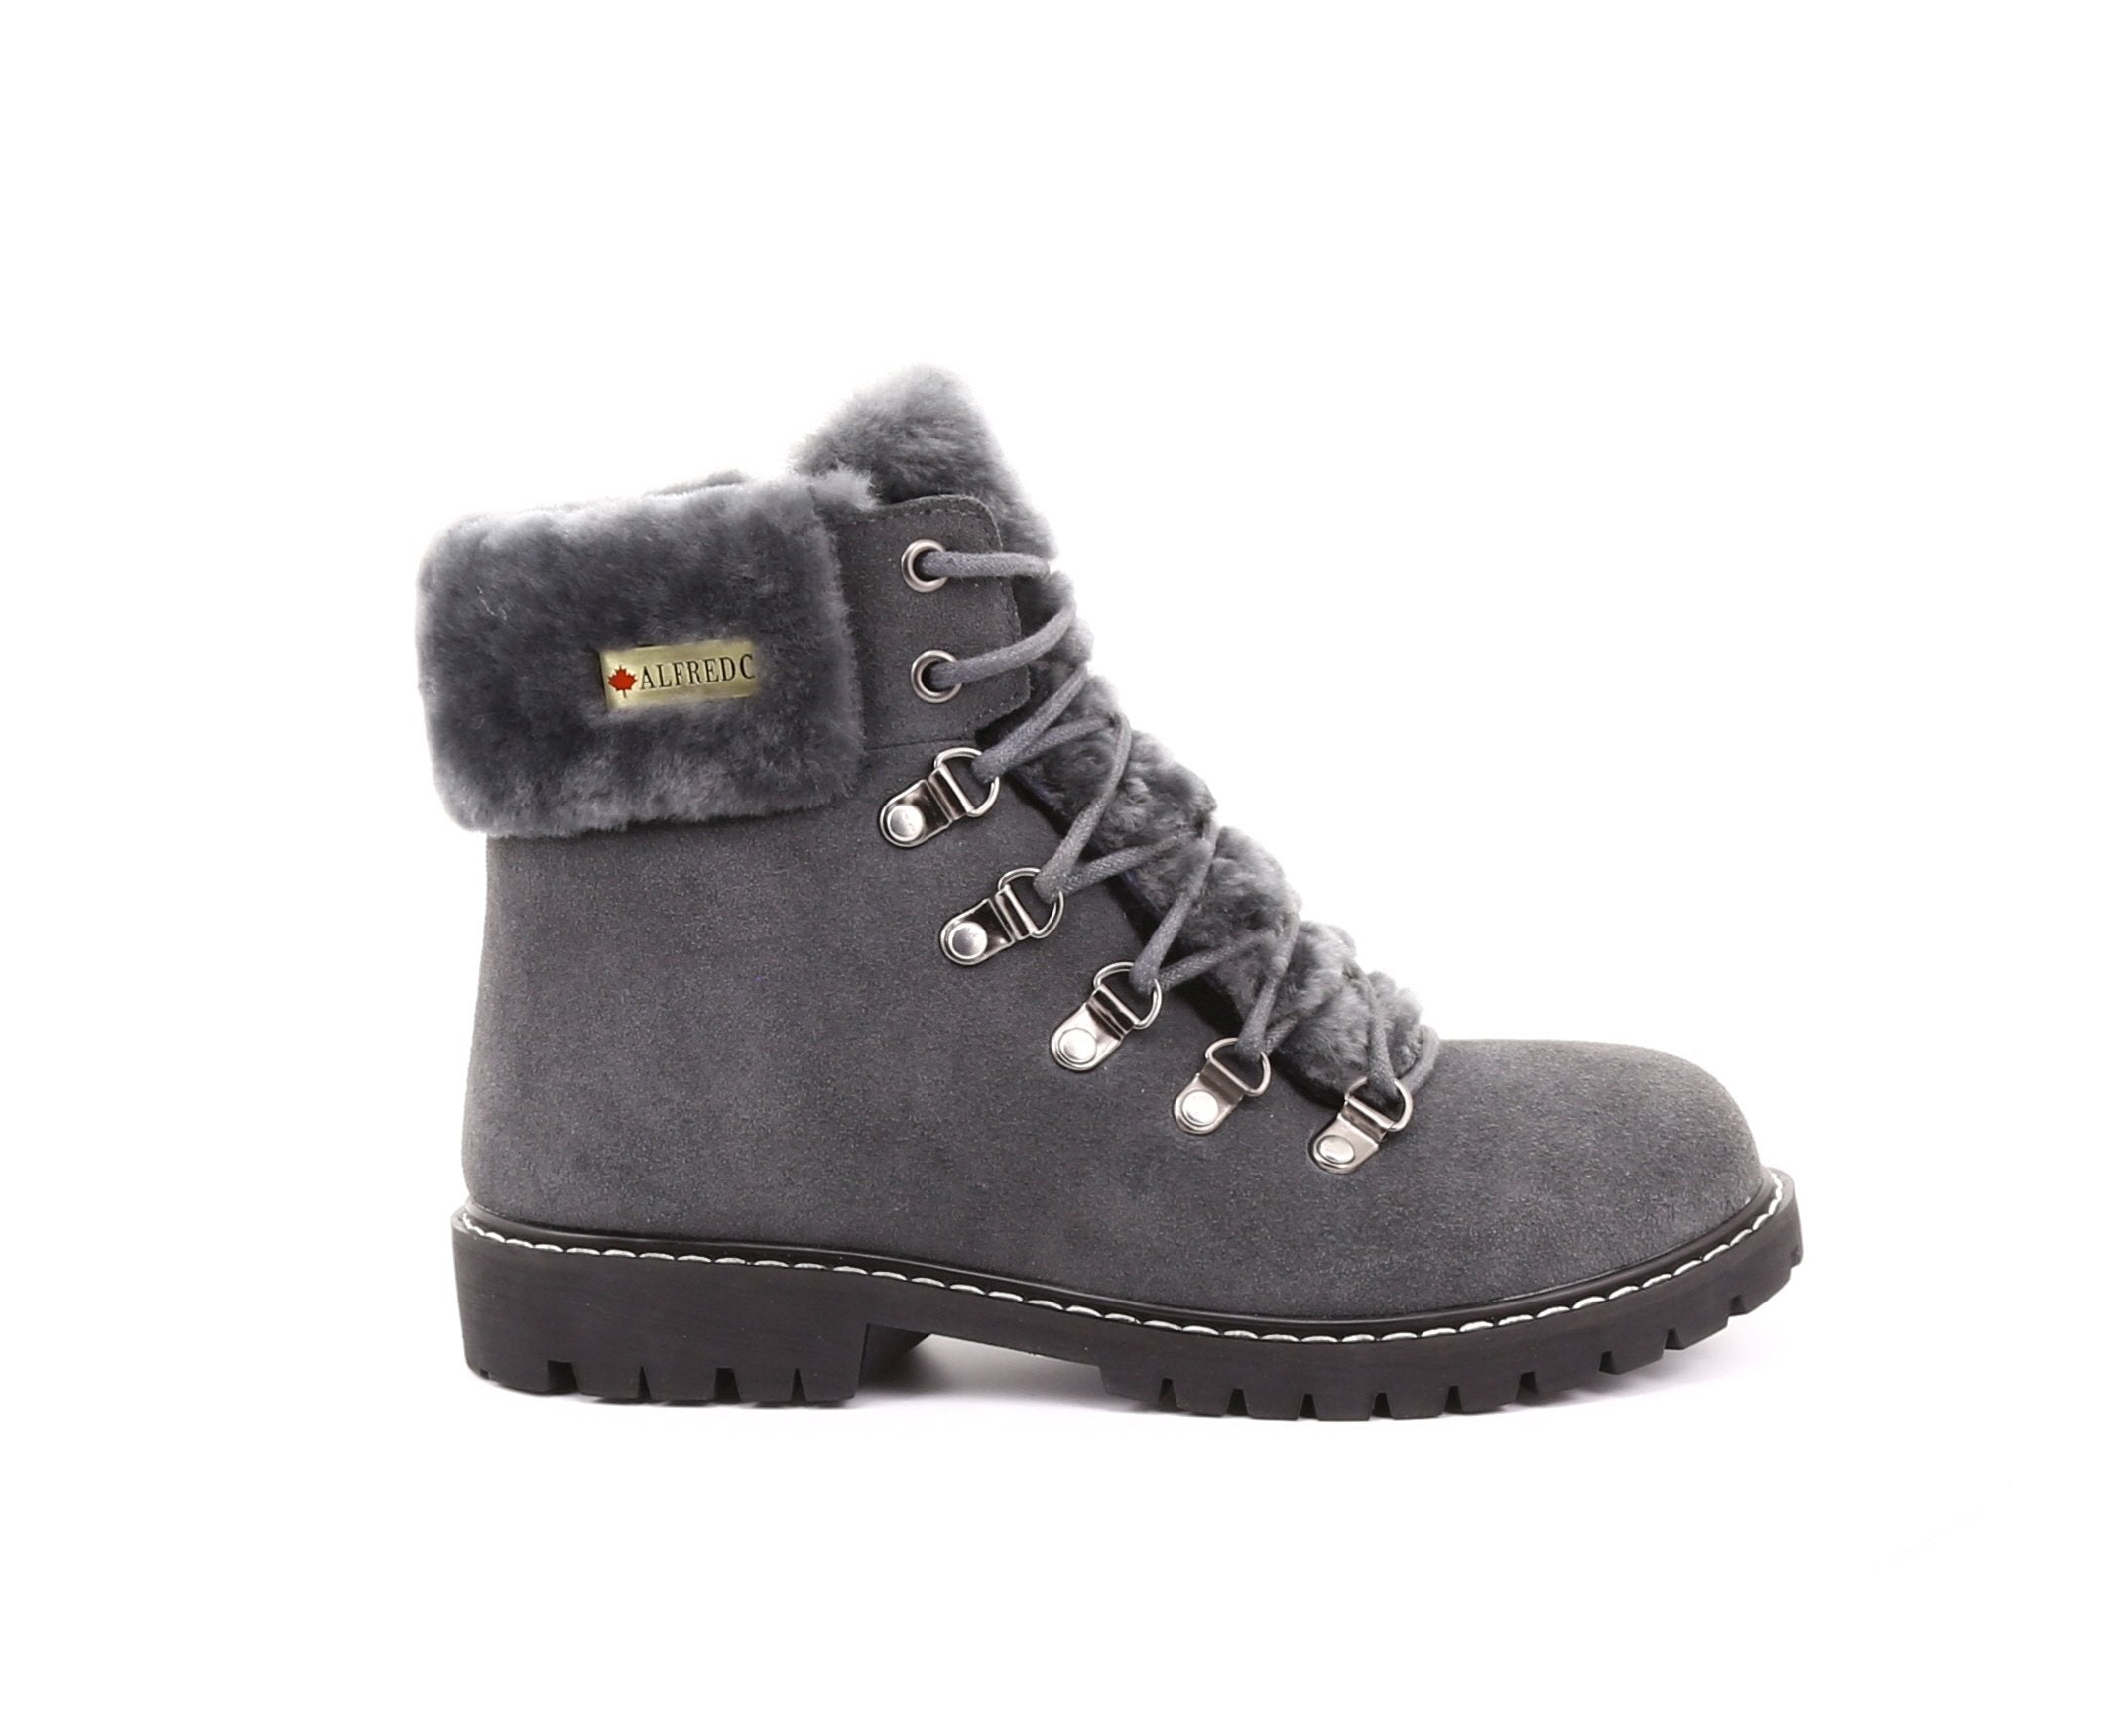 Aisha Women's Winter Boot in Suede with Retractable Cleats - Alfred Cloutier Ltd. - Canada